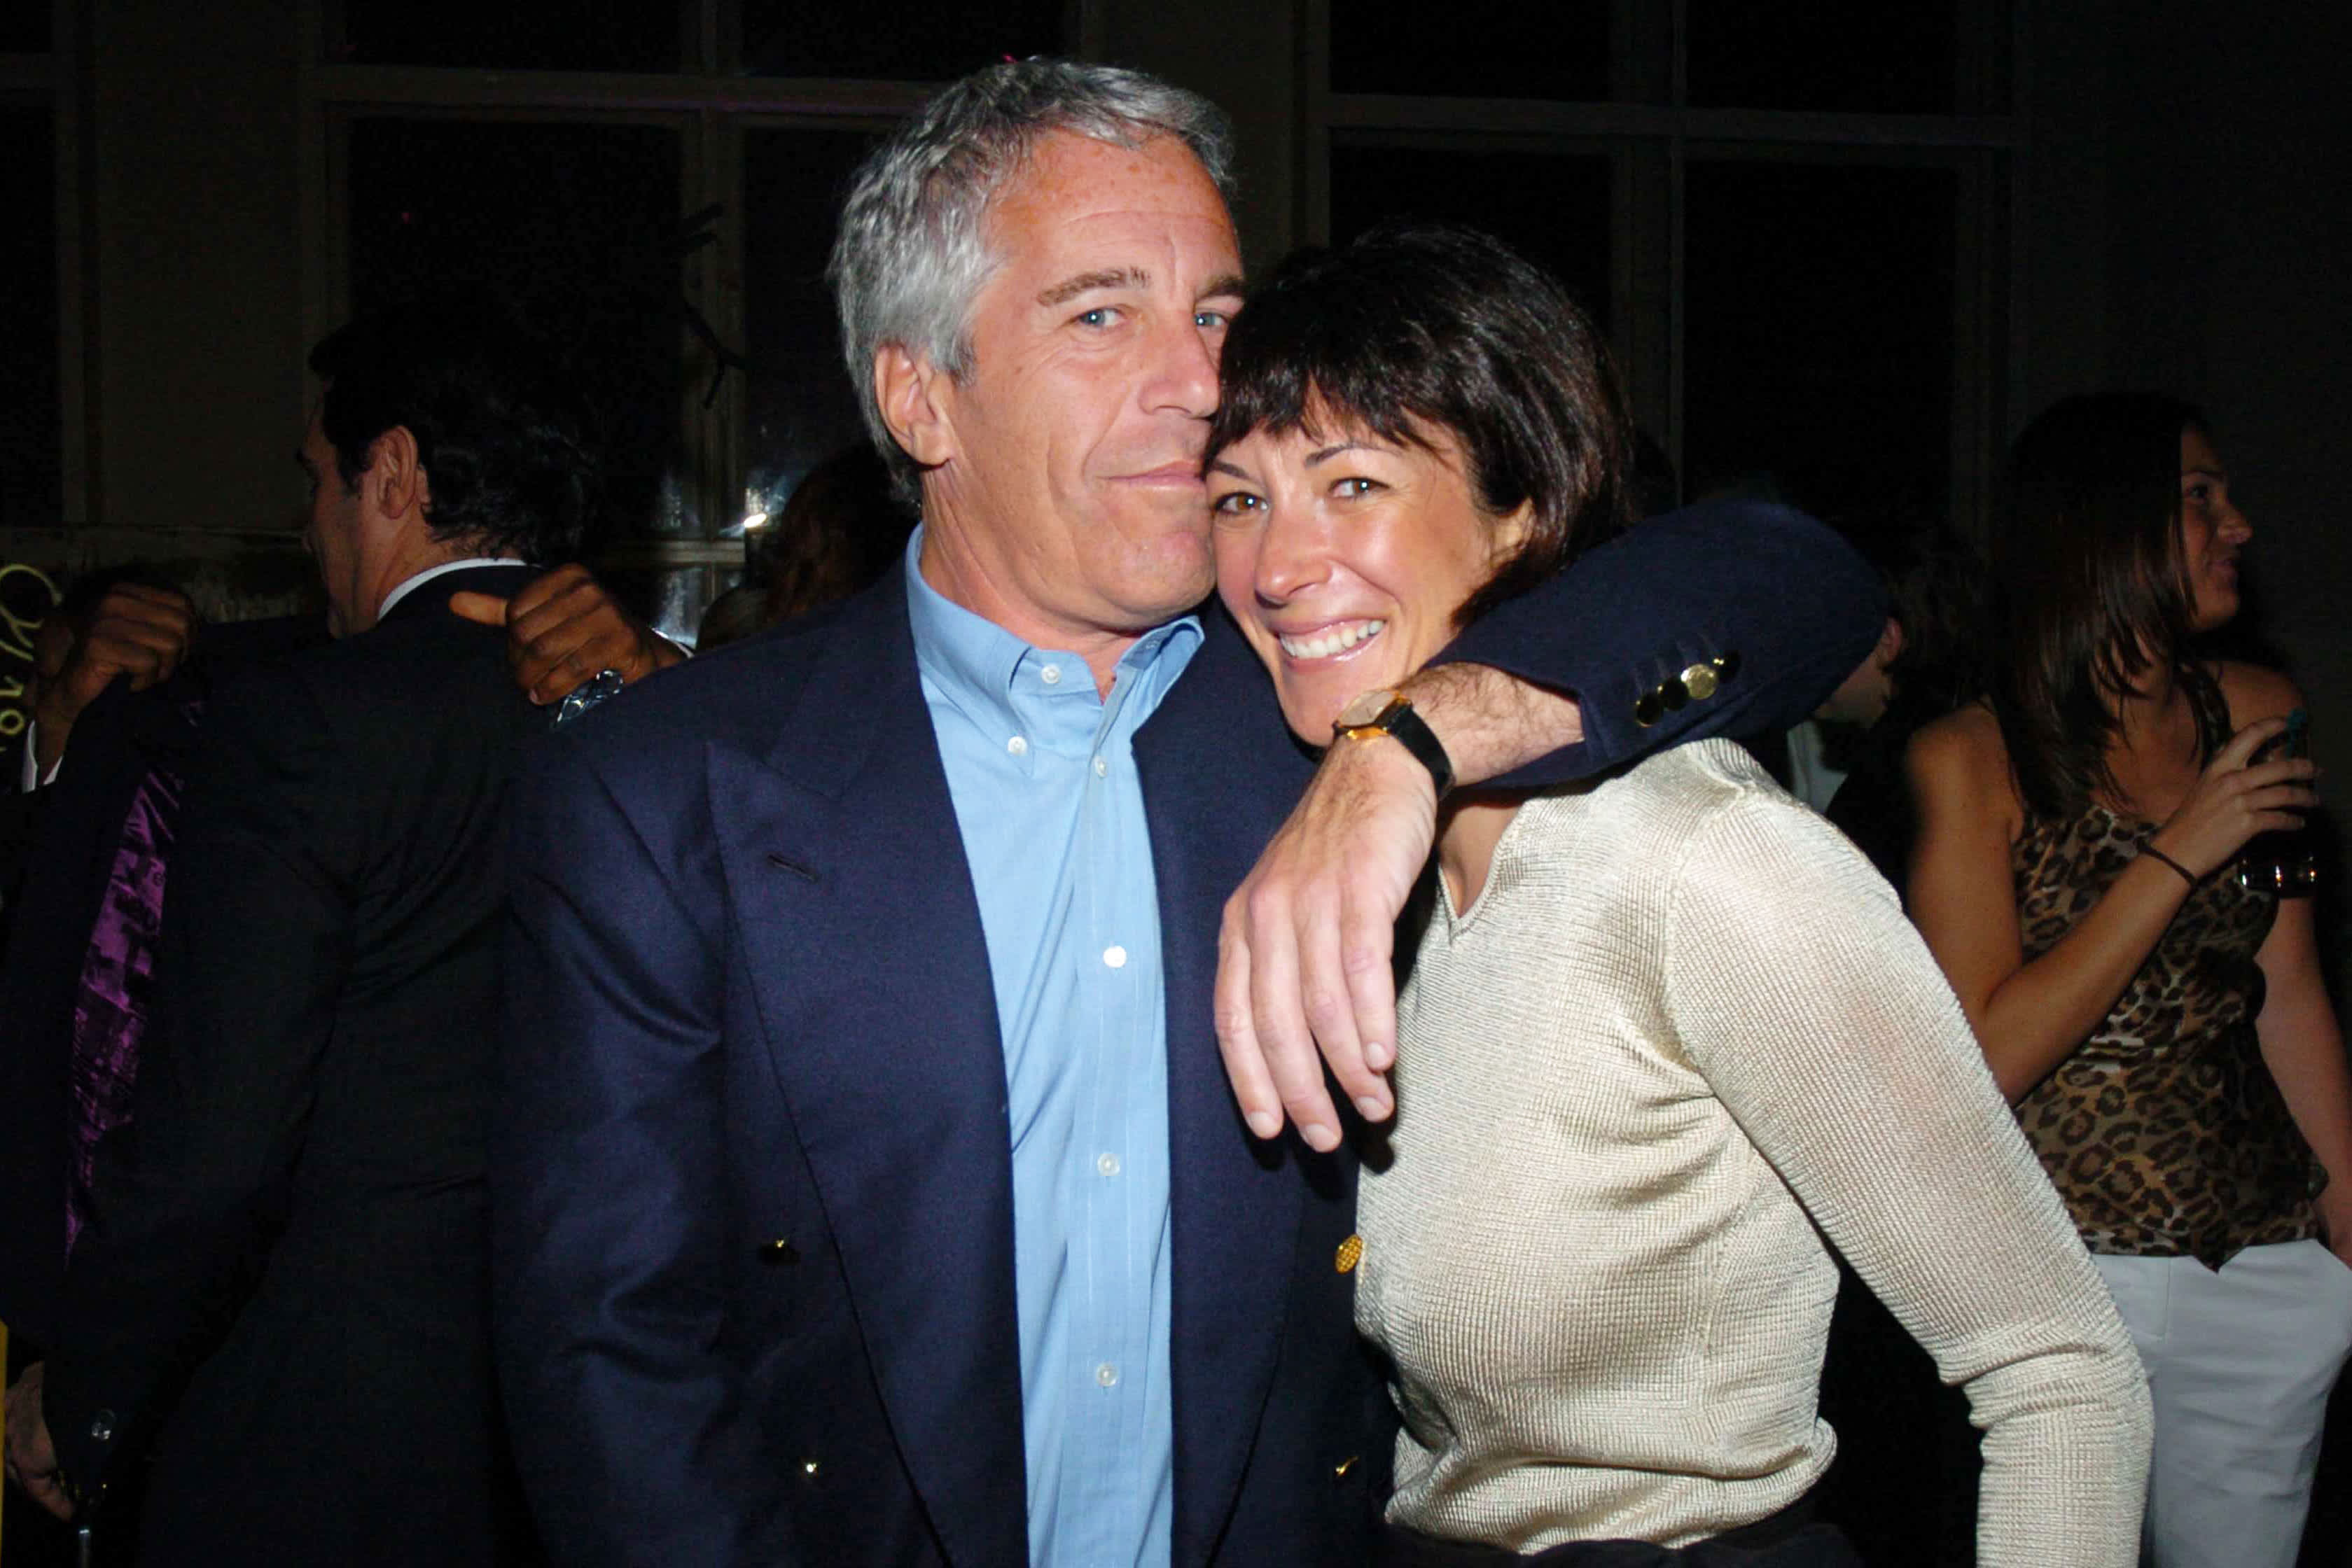 'Hundreds of other people could be implicated' in Jeffrey Epstein, Ghislaine Maxwell court documents